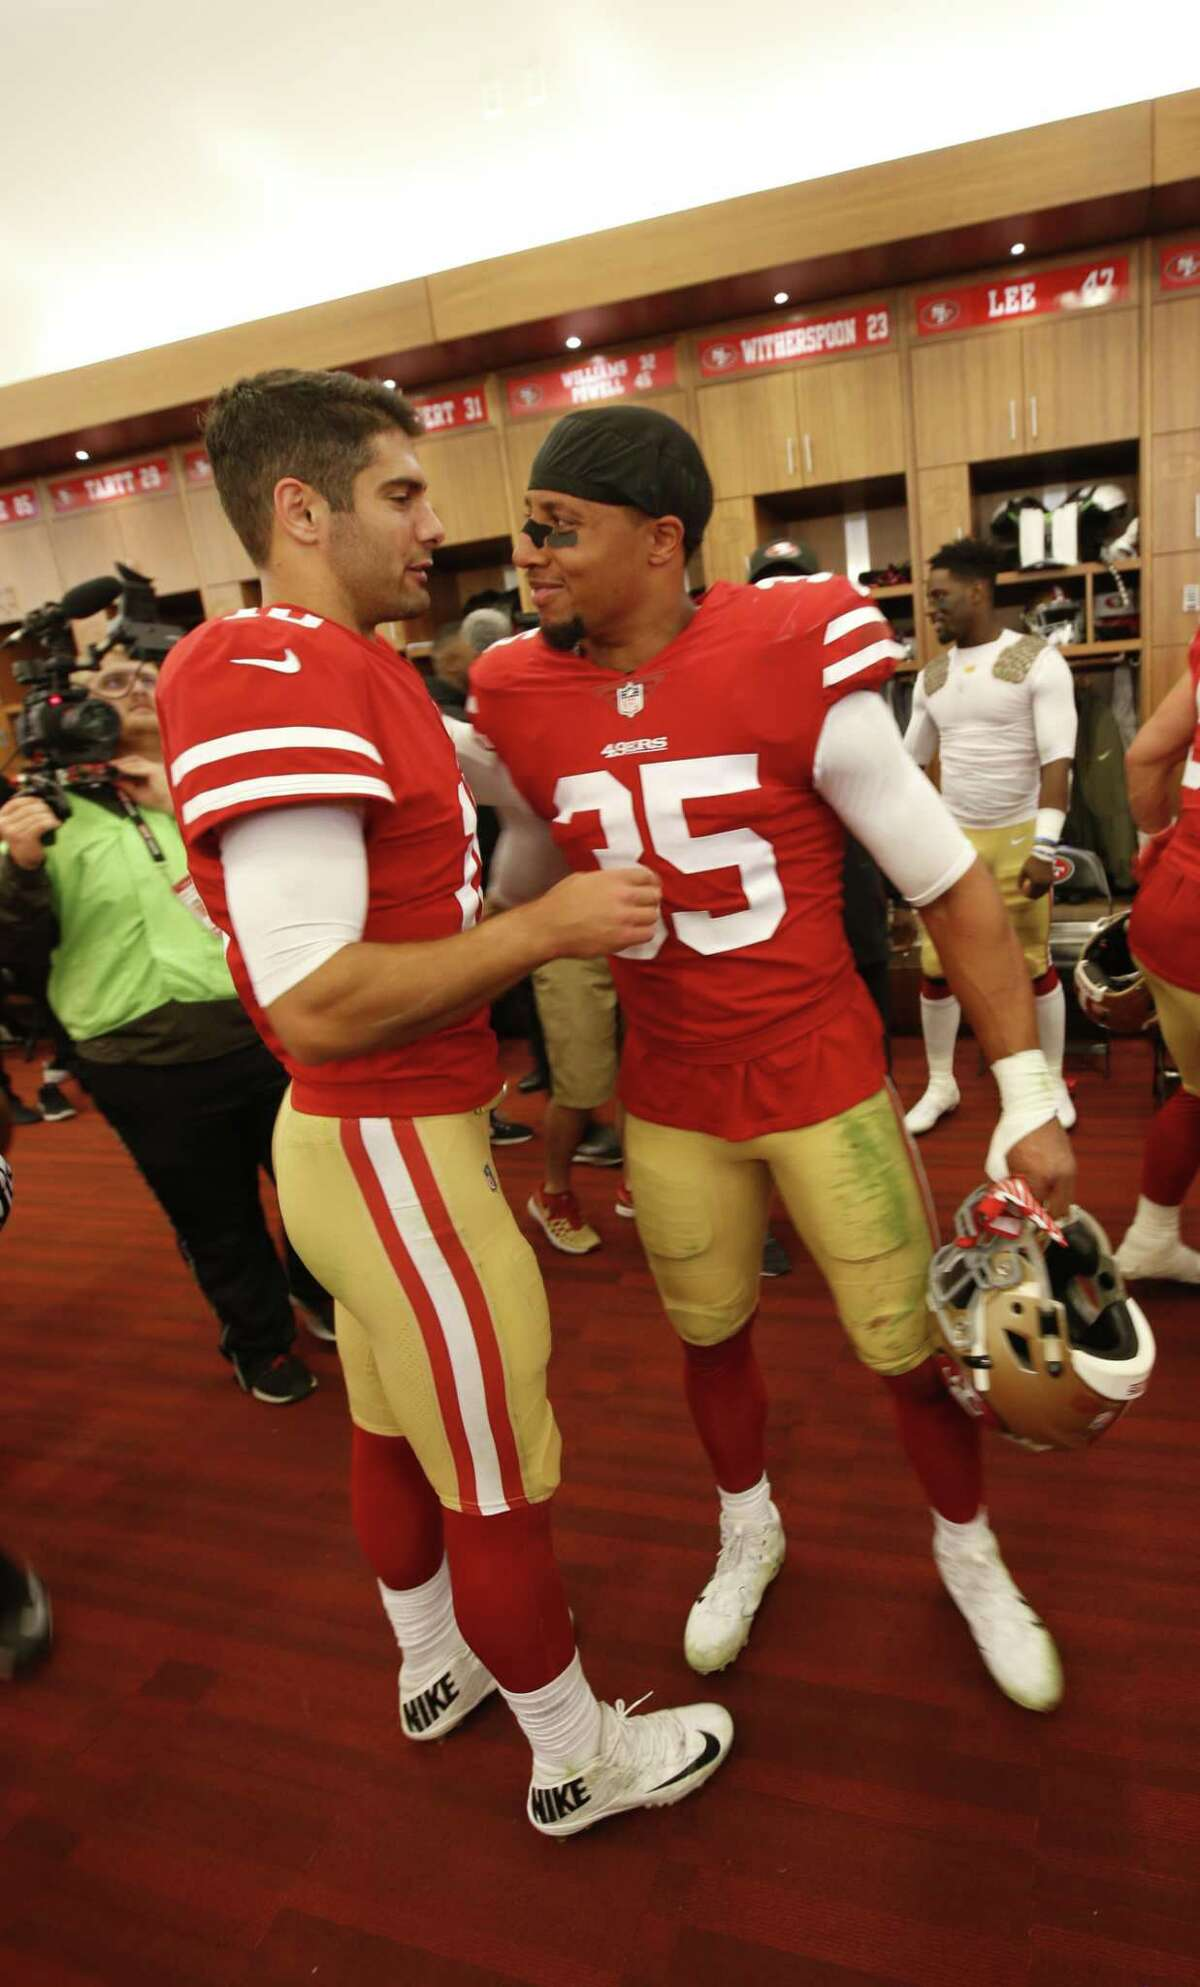 Jimmy Garoppolo #10 and Eric Reid #35 of the San Francisco 49ers celebrate in the locker room following the game against the Tennessee Titans at Levi's Stadium on December 17, 2017 in Santa Clara, California. The 49ers defeated the Titans 25-23.